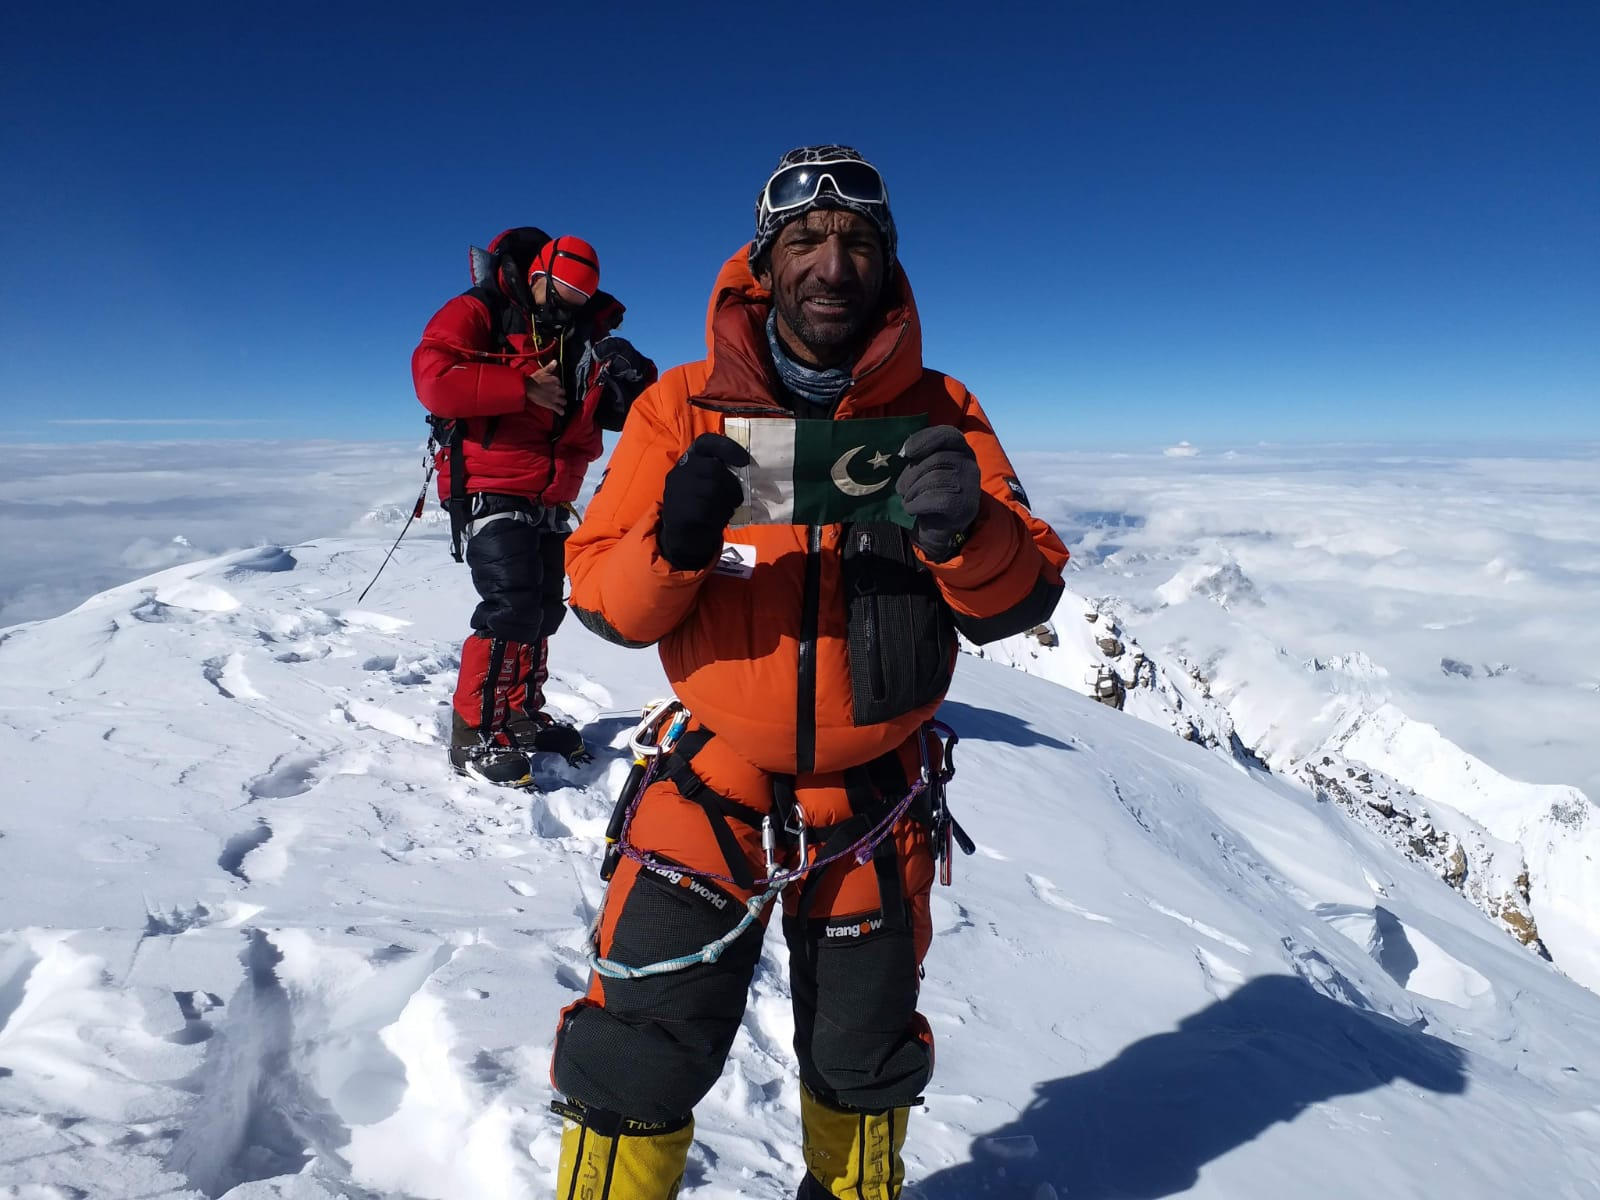 #A BIG LOSS FOR PAKISTAN NATION,ALI SADPARA THE PAKI MOUNTAIN CLIMBER IS OFFICALY DECLARED DEAD.